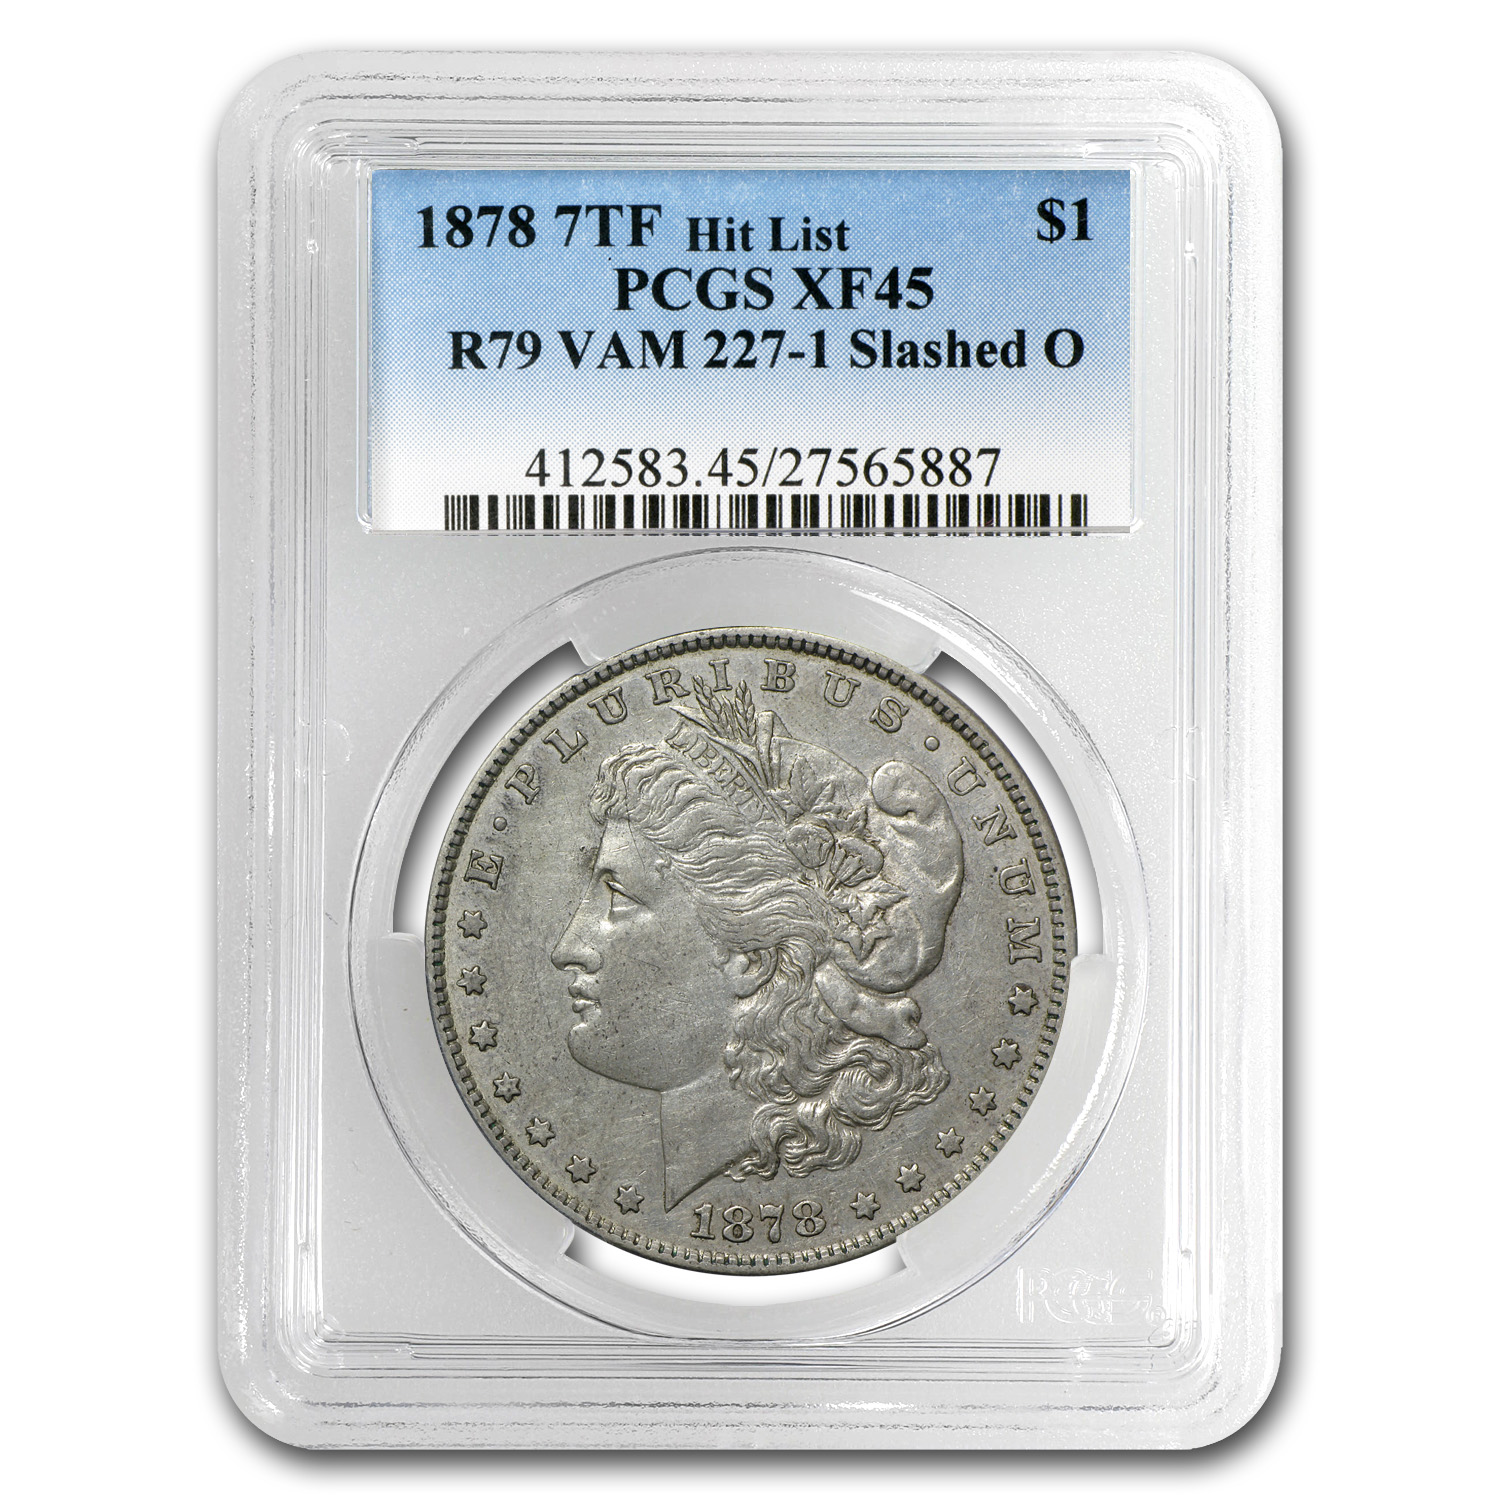 1878 Morgan Dollar 7 TF Rev 79 XF-45 PCGS (VAM-227-1, Slashed O)